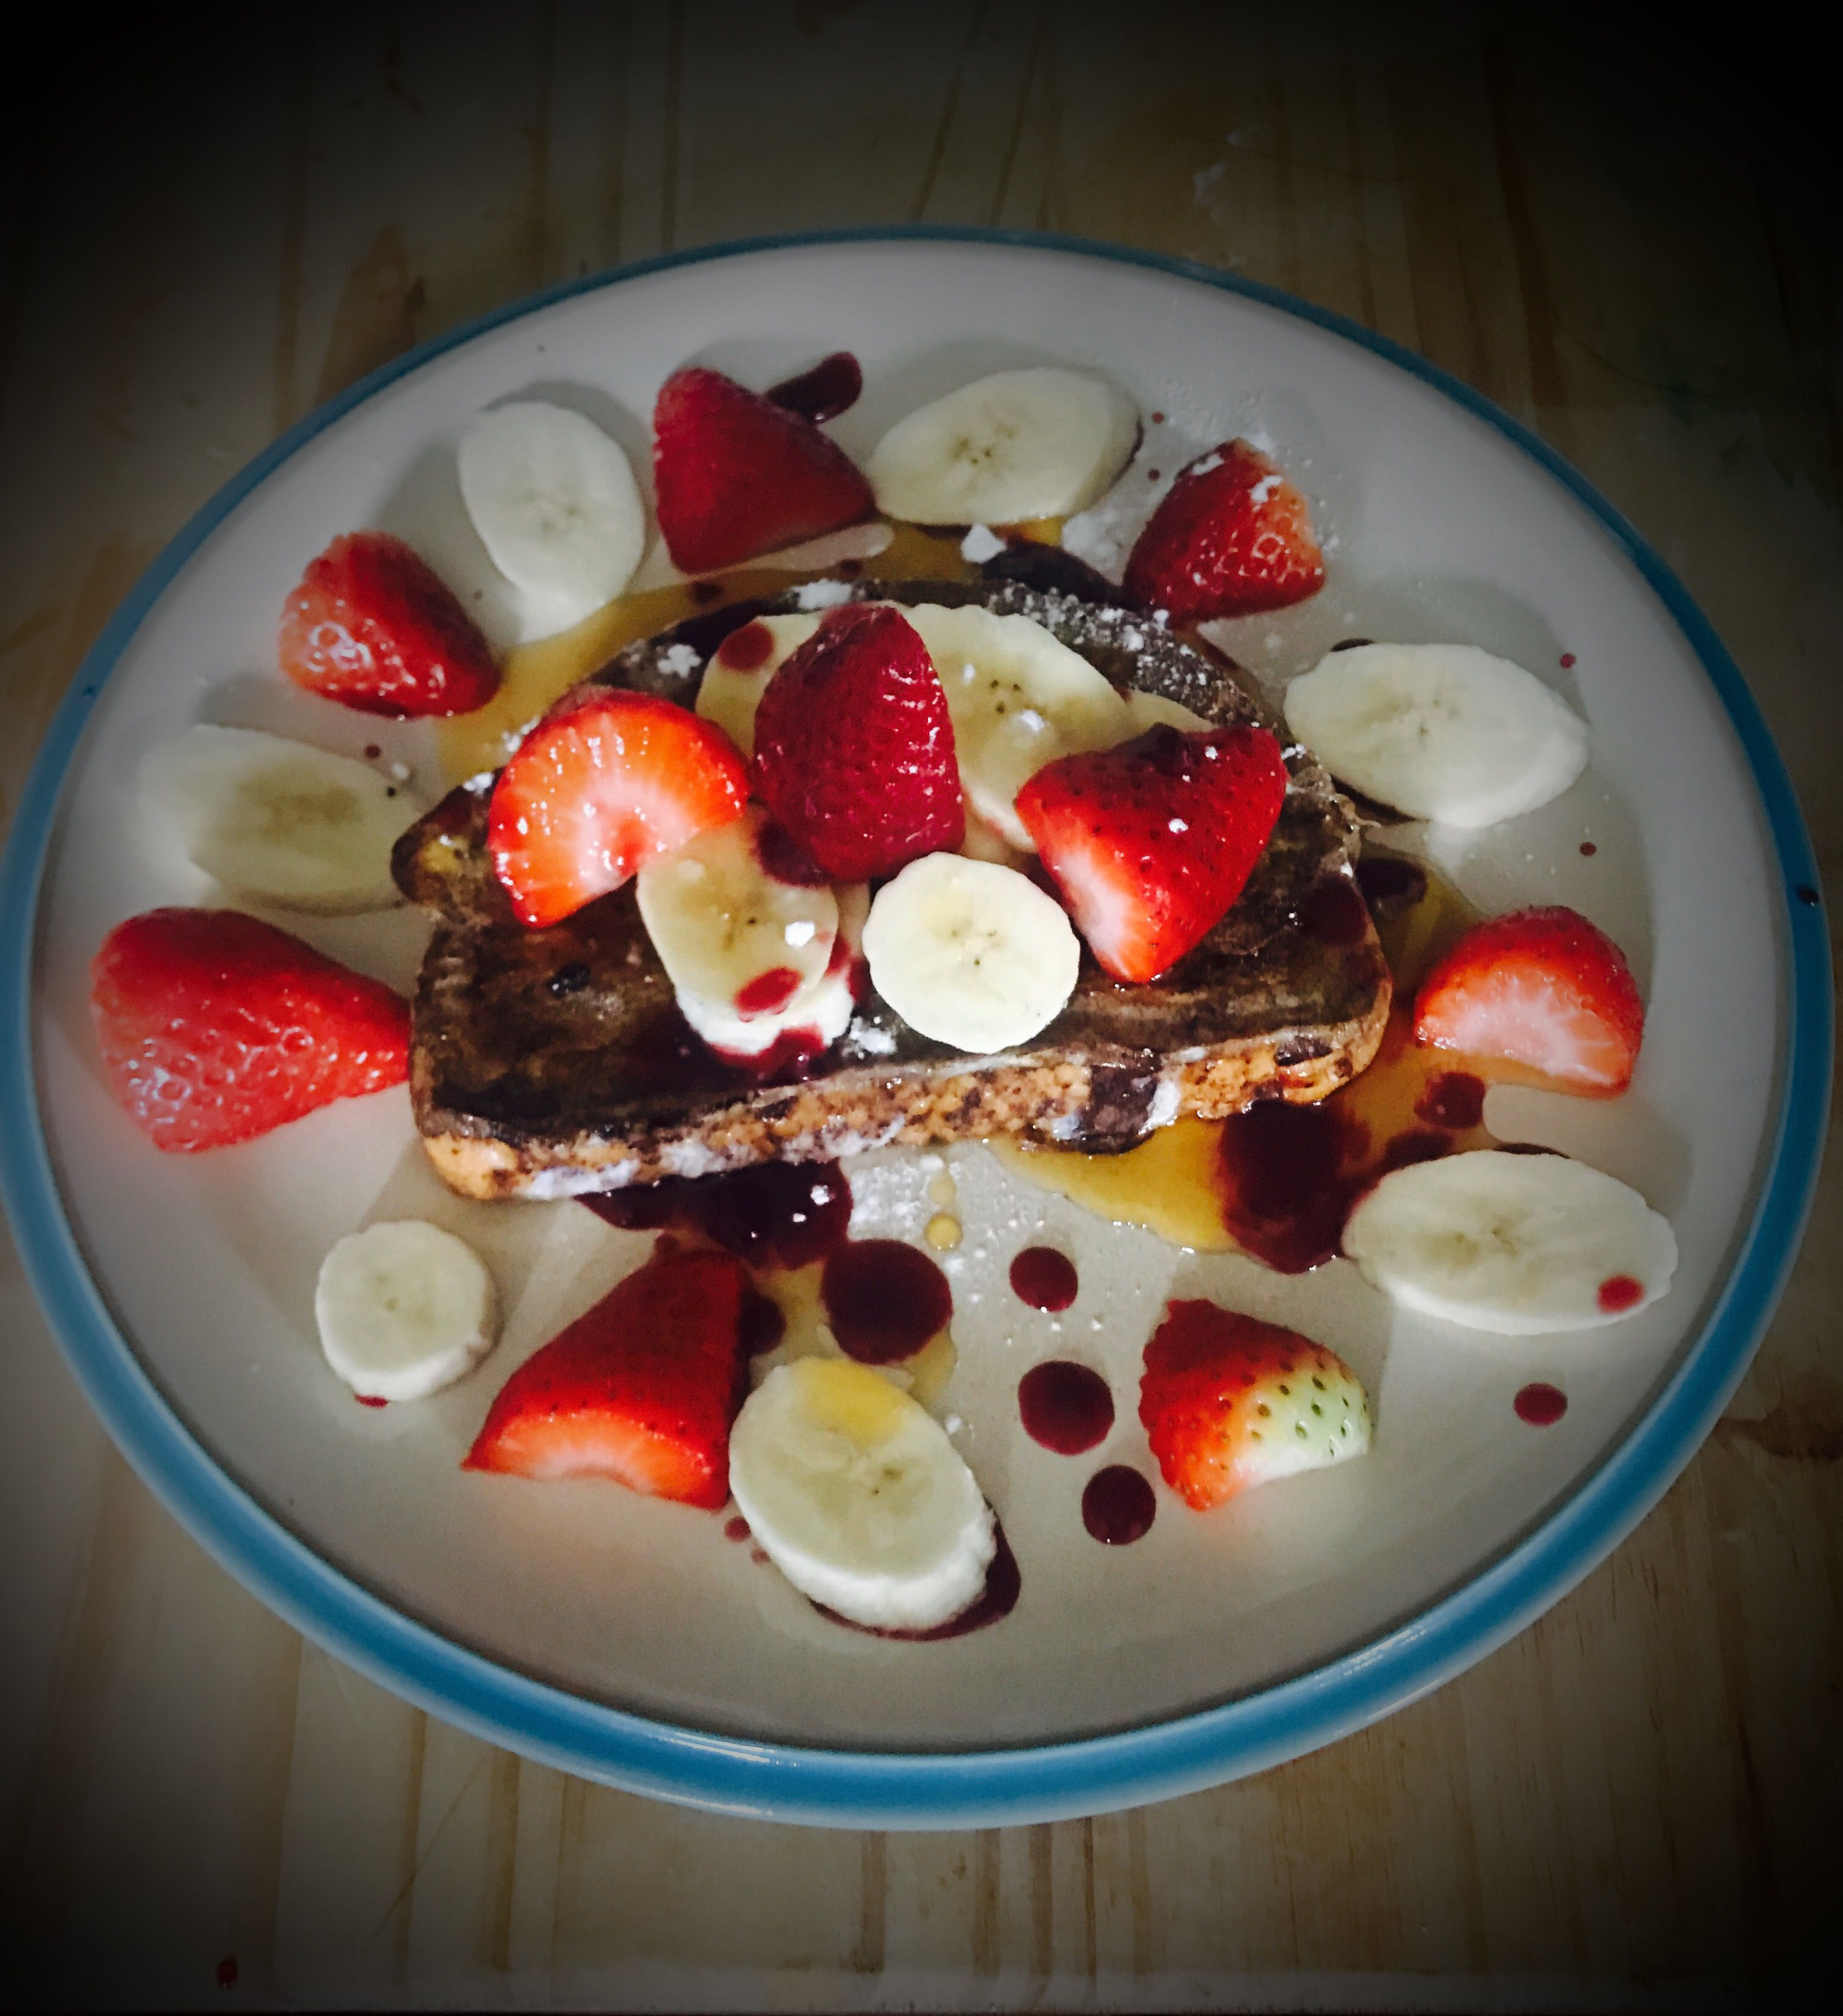 Sourdough French Toast, with Fresh Fruit, Cherry Drizzle and Maple Syrup.